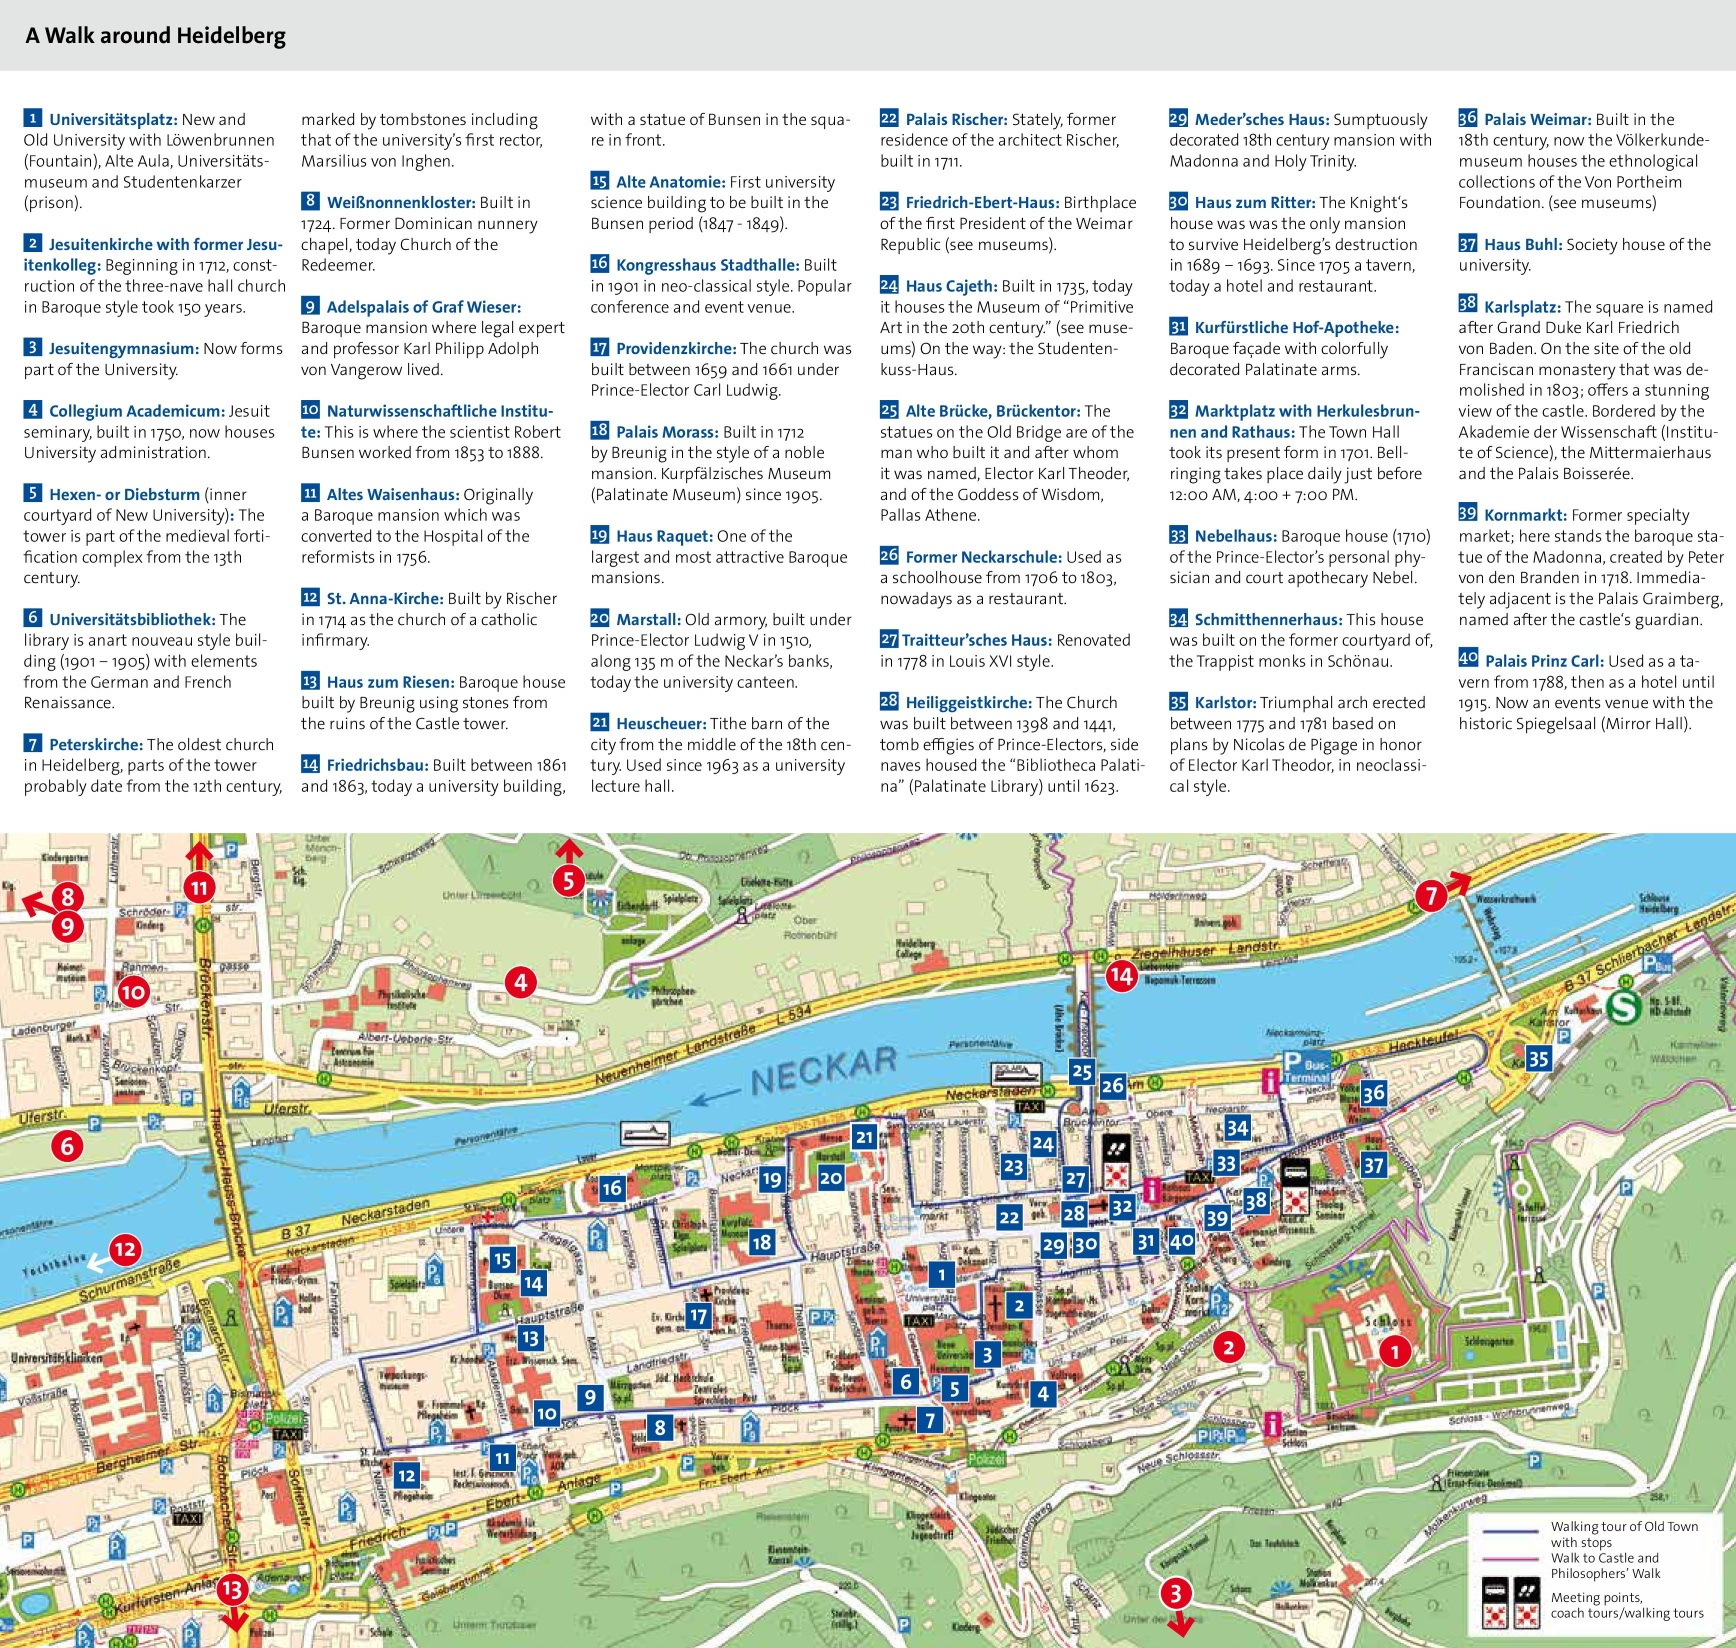 Heidelberg tourist attractions map